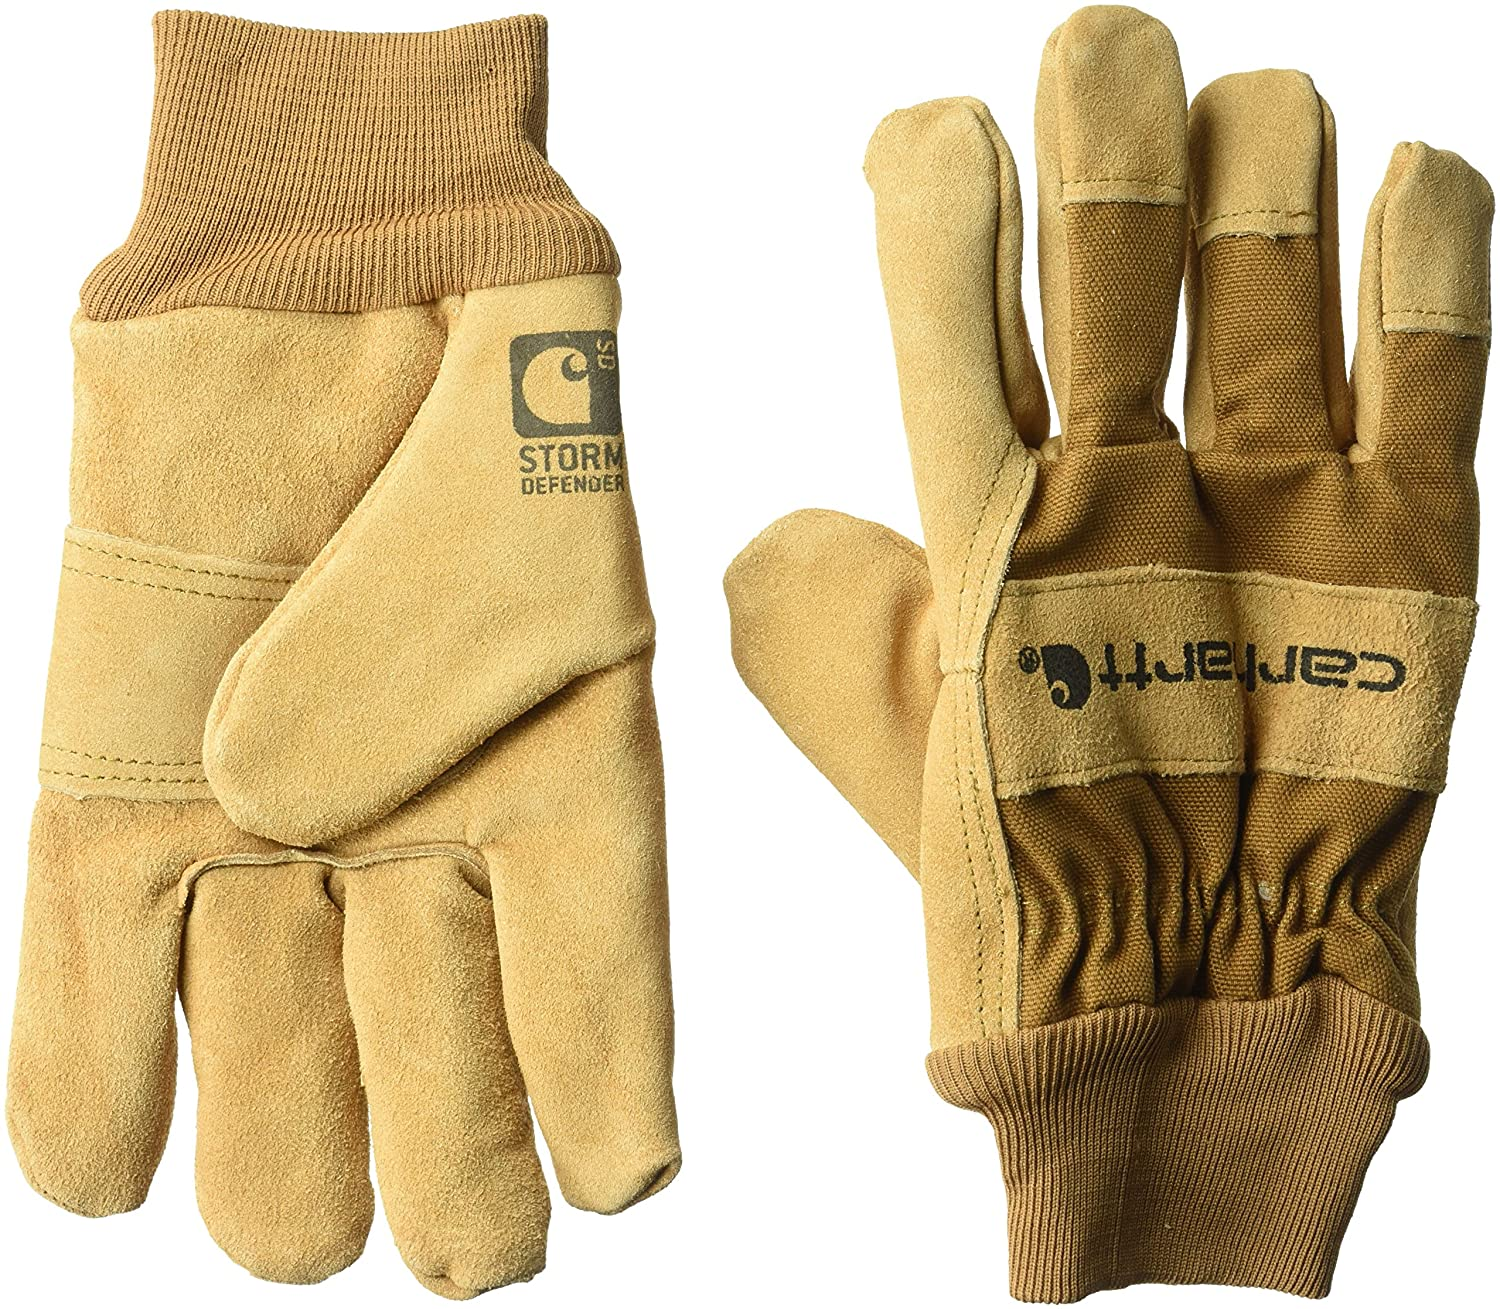 Carhartt mens Wb Suede Leather Waterproof Breathable Work Glove Carhartt Men' s Gloves A705